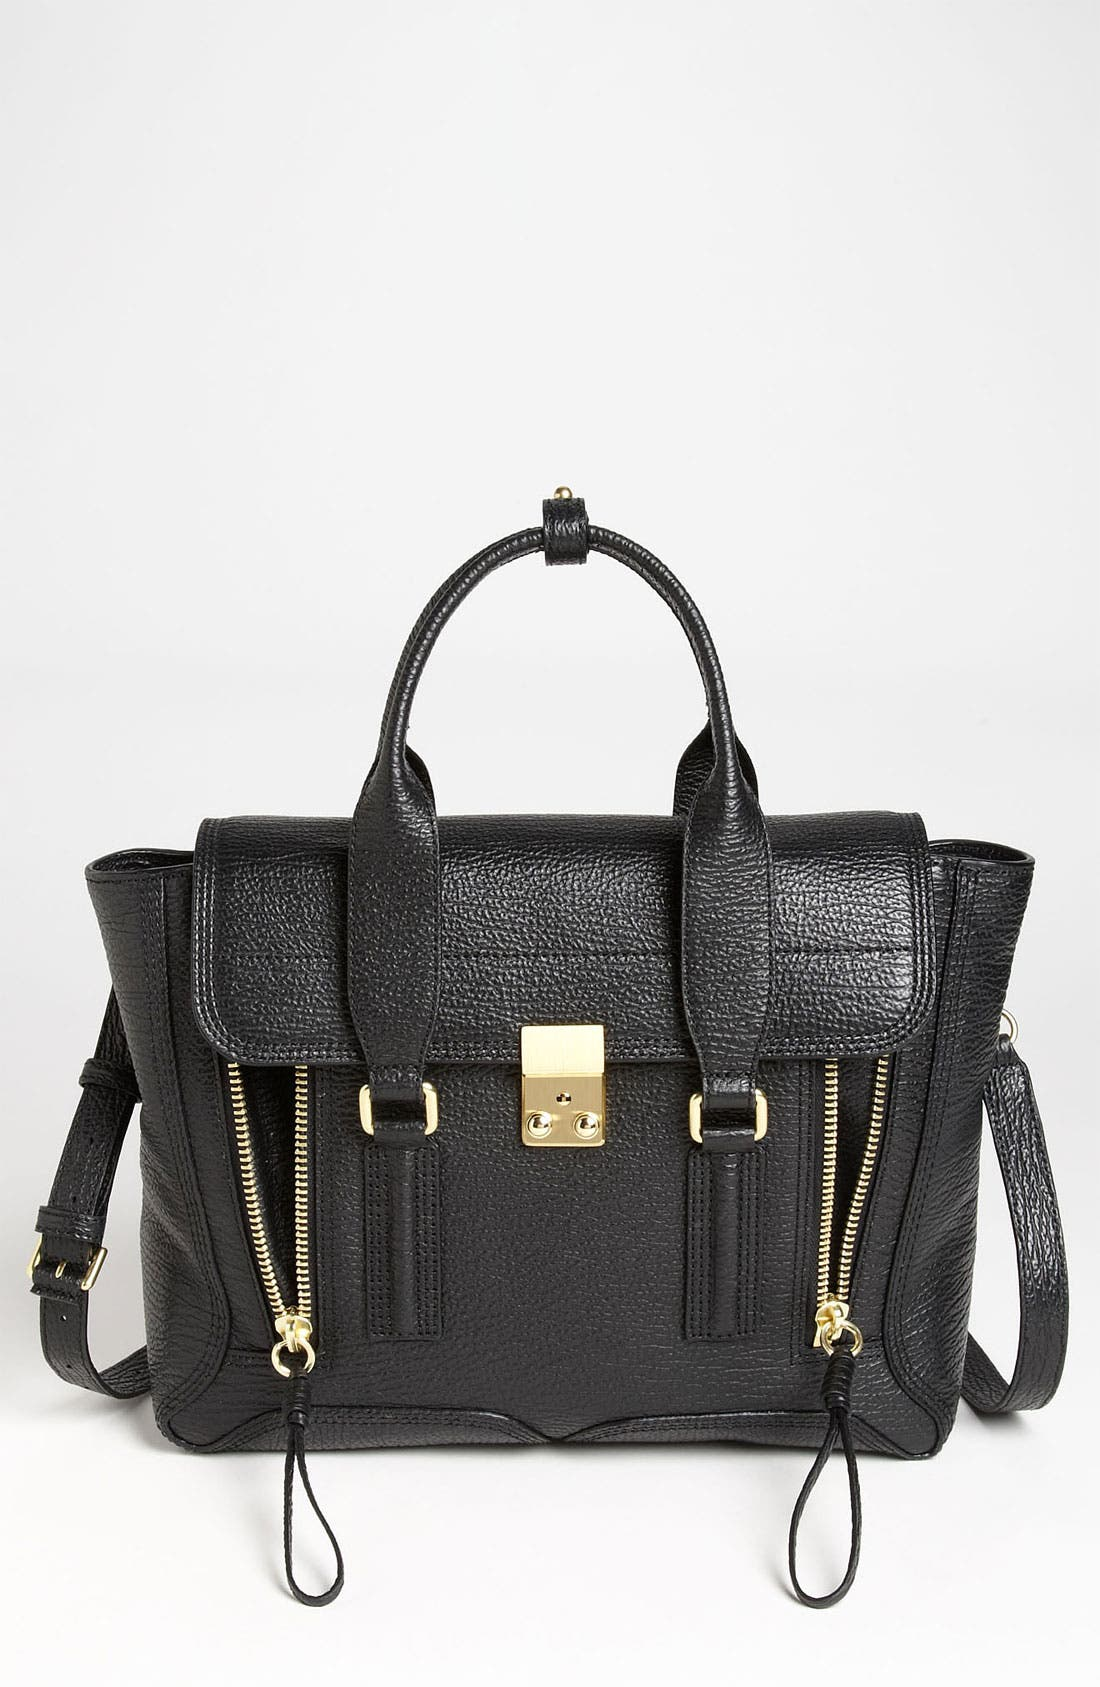 Alternate Image 1 Selected - 3.1 Phillip Lim 'Medium Pashli' Leather Satchel